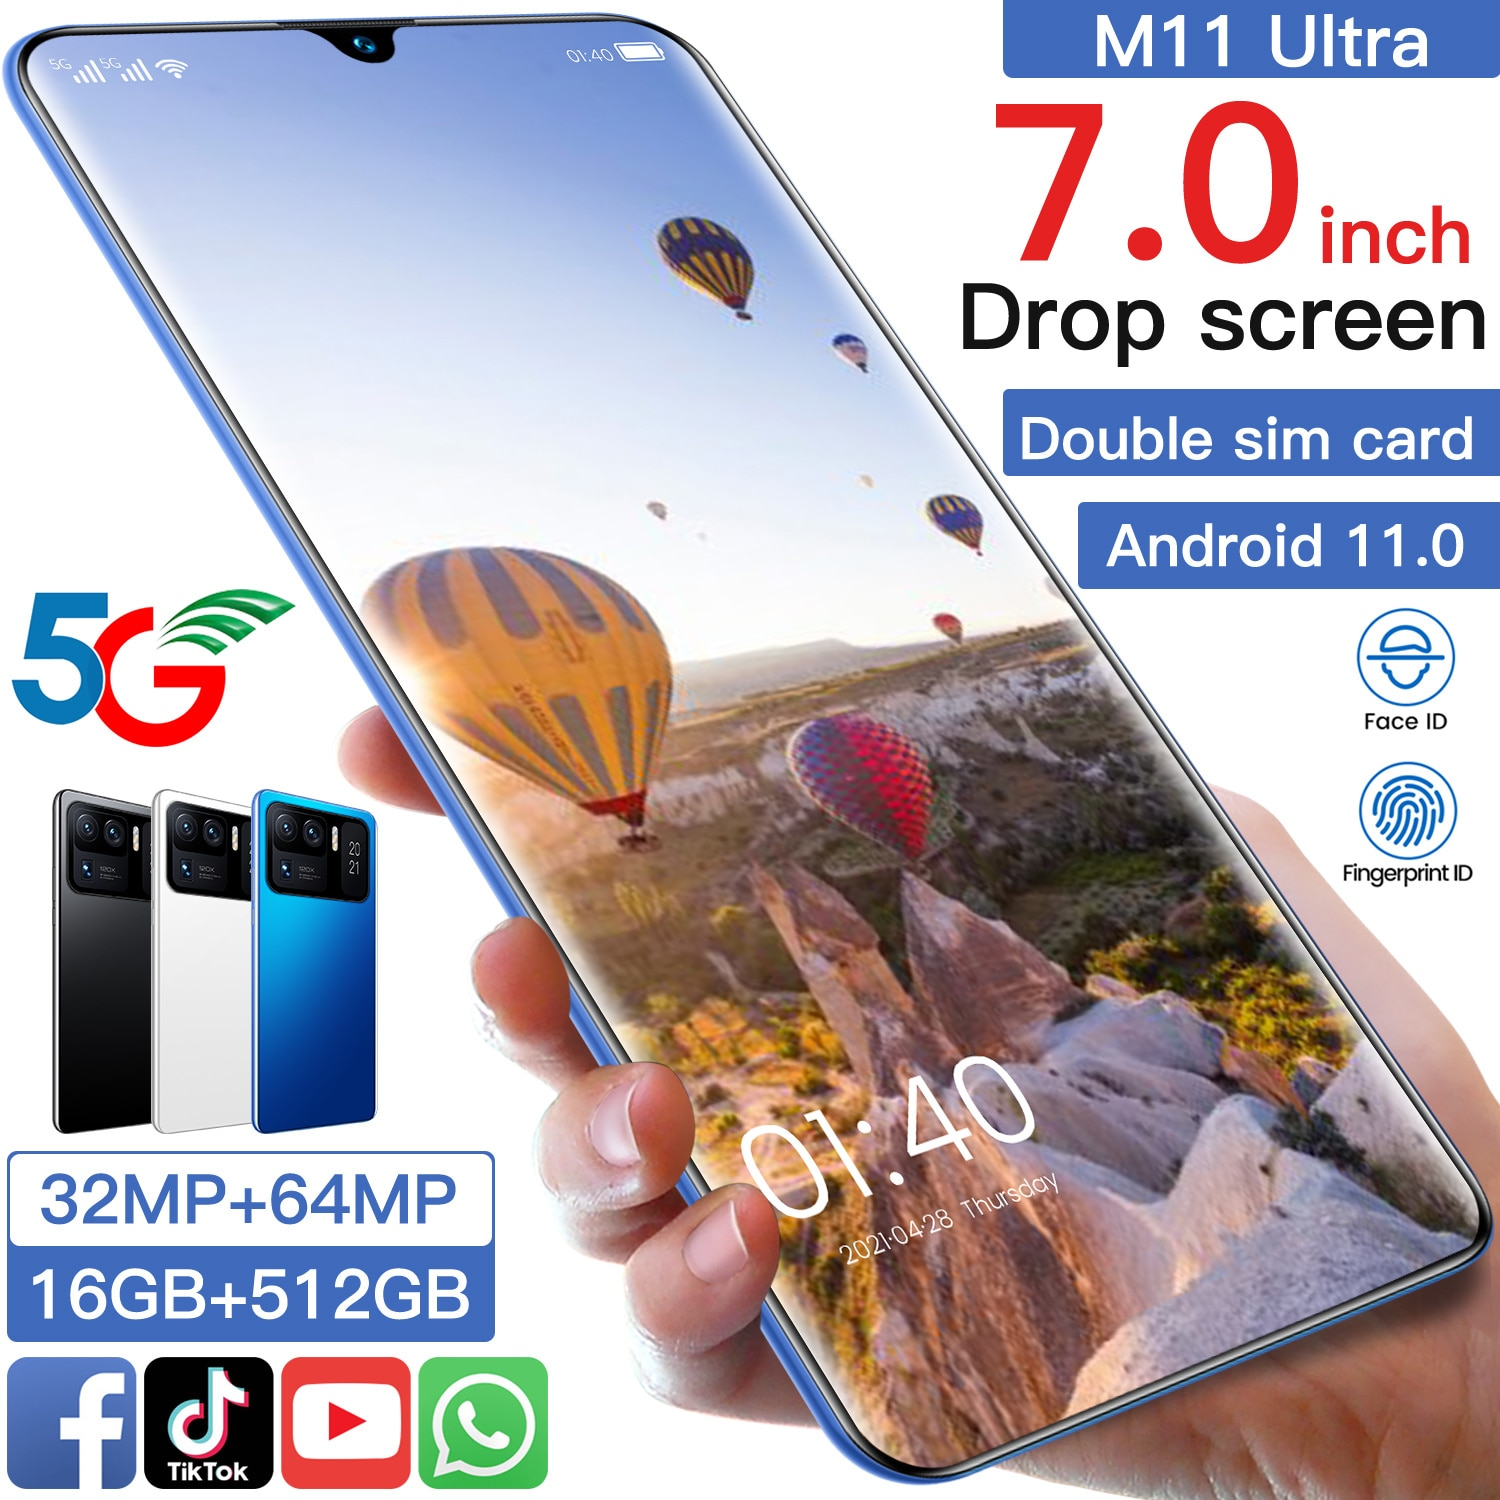 New Arrival XIAOM11 Ultra 5G Mobile Cell Phone 7.0Inch 16+512GB MT6893 Deca Core Finger Face ID 32MP+64MP 7200MAH Dual SIM Card